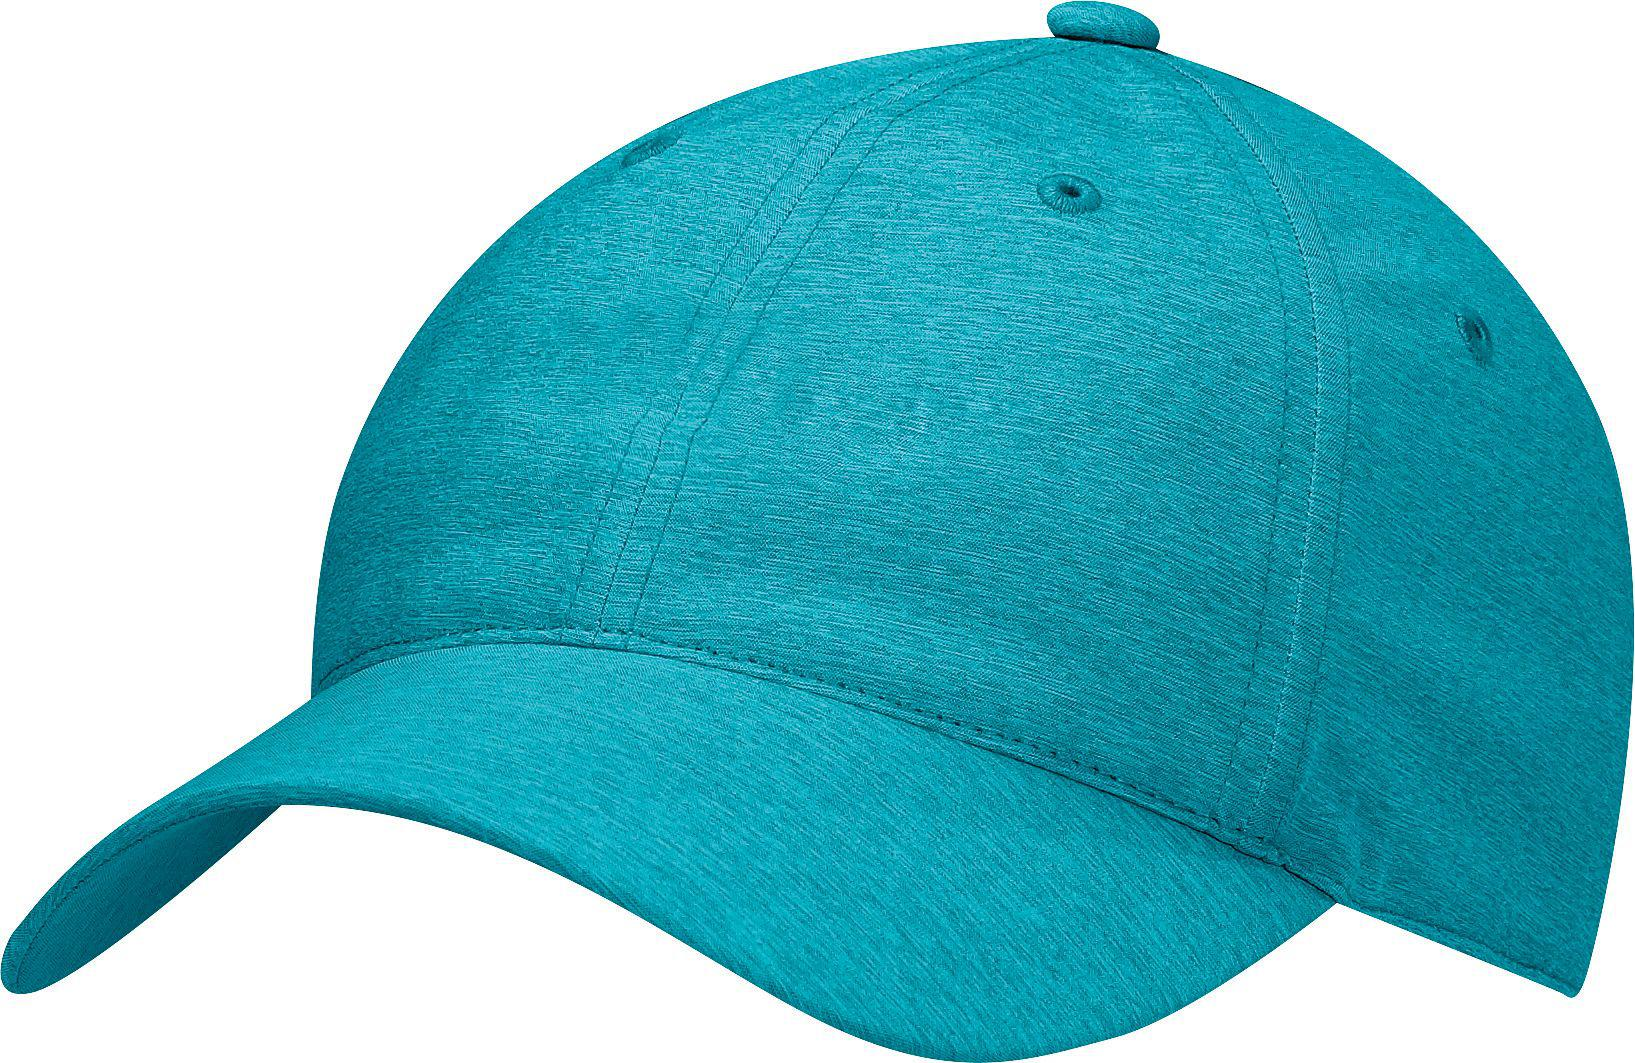 e2c16cbc089 Lyst - Adidas Crestable Fashion Golf Hat in Blue for Men